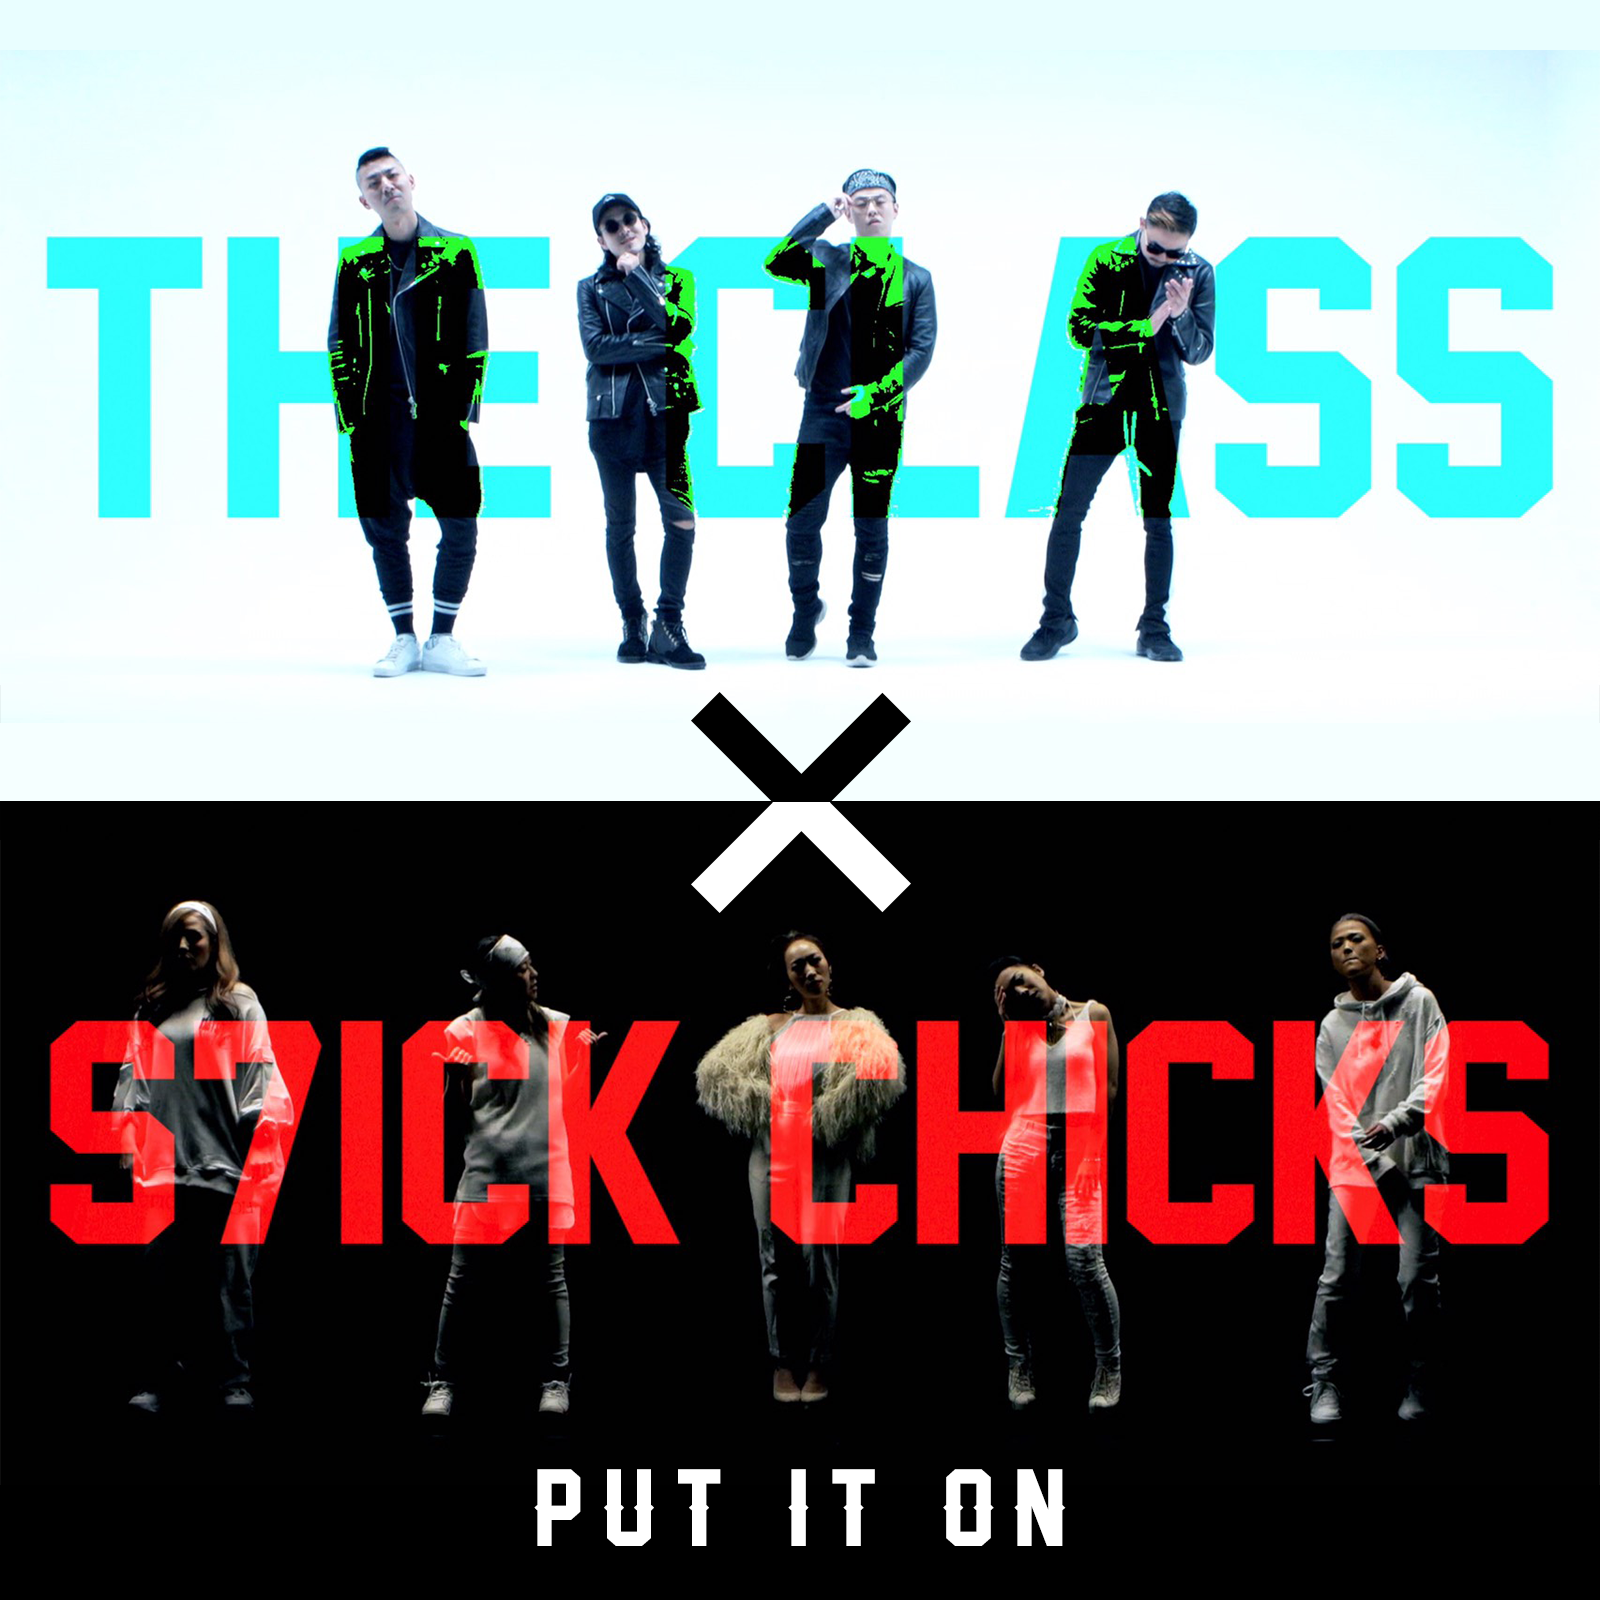 THE CLASS x S7ICKCHICKS / Put It On -Single / 2018.03.09